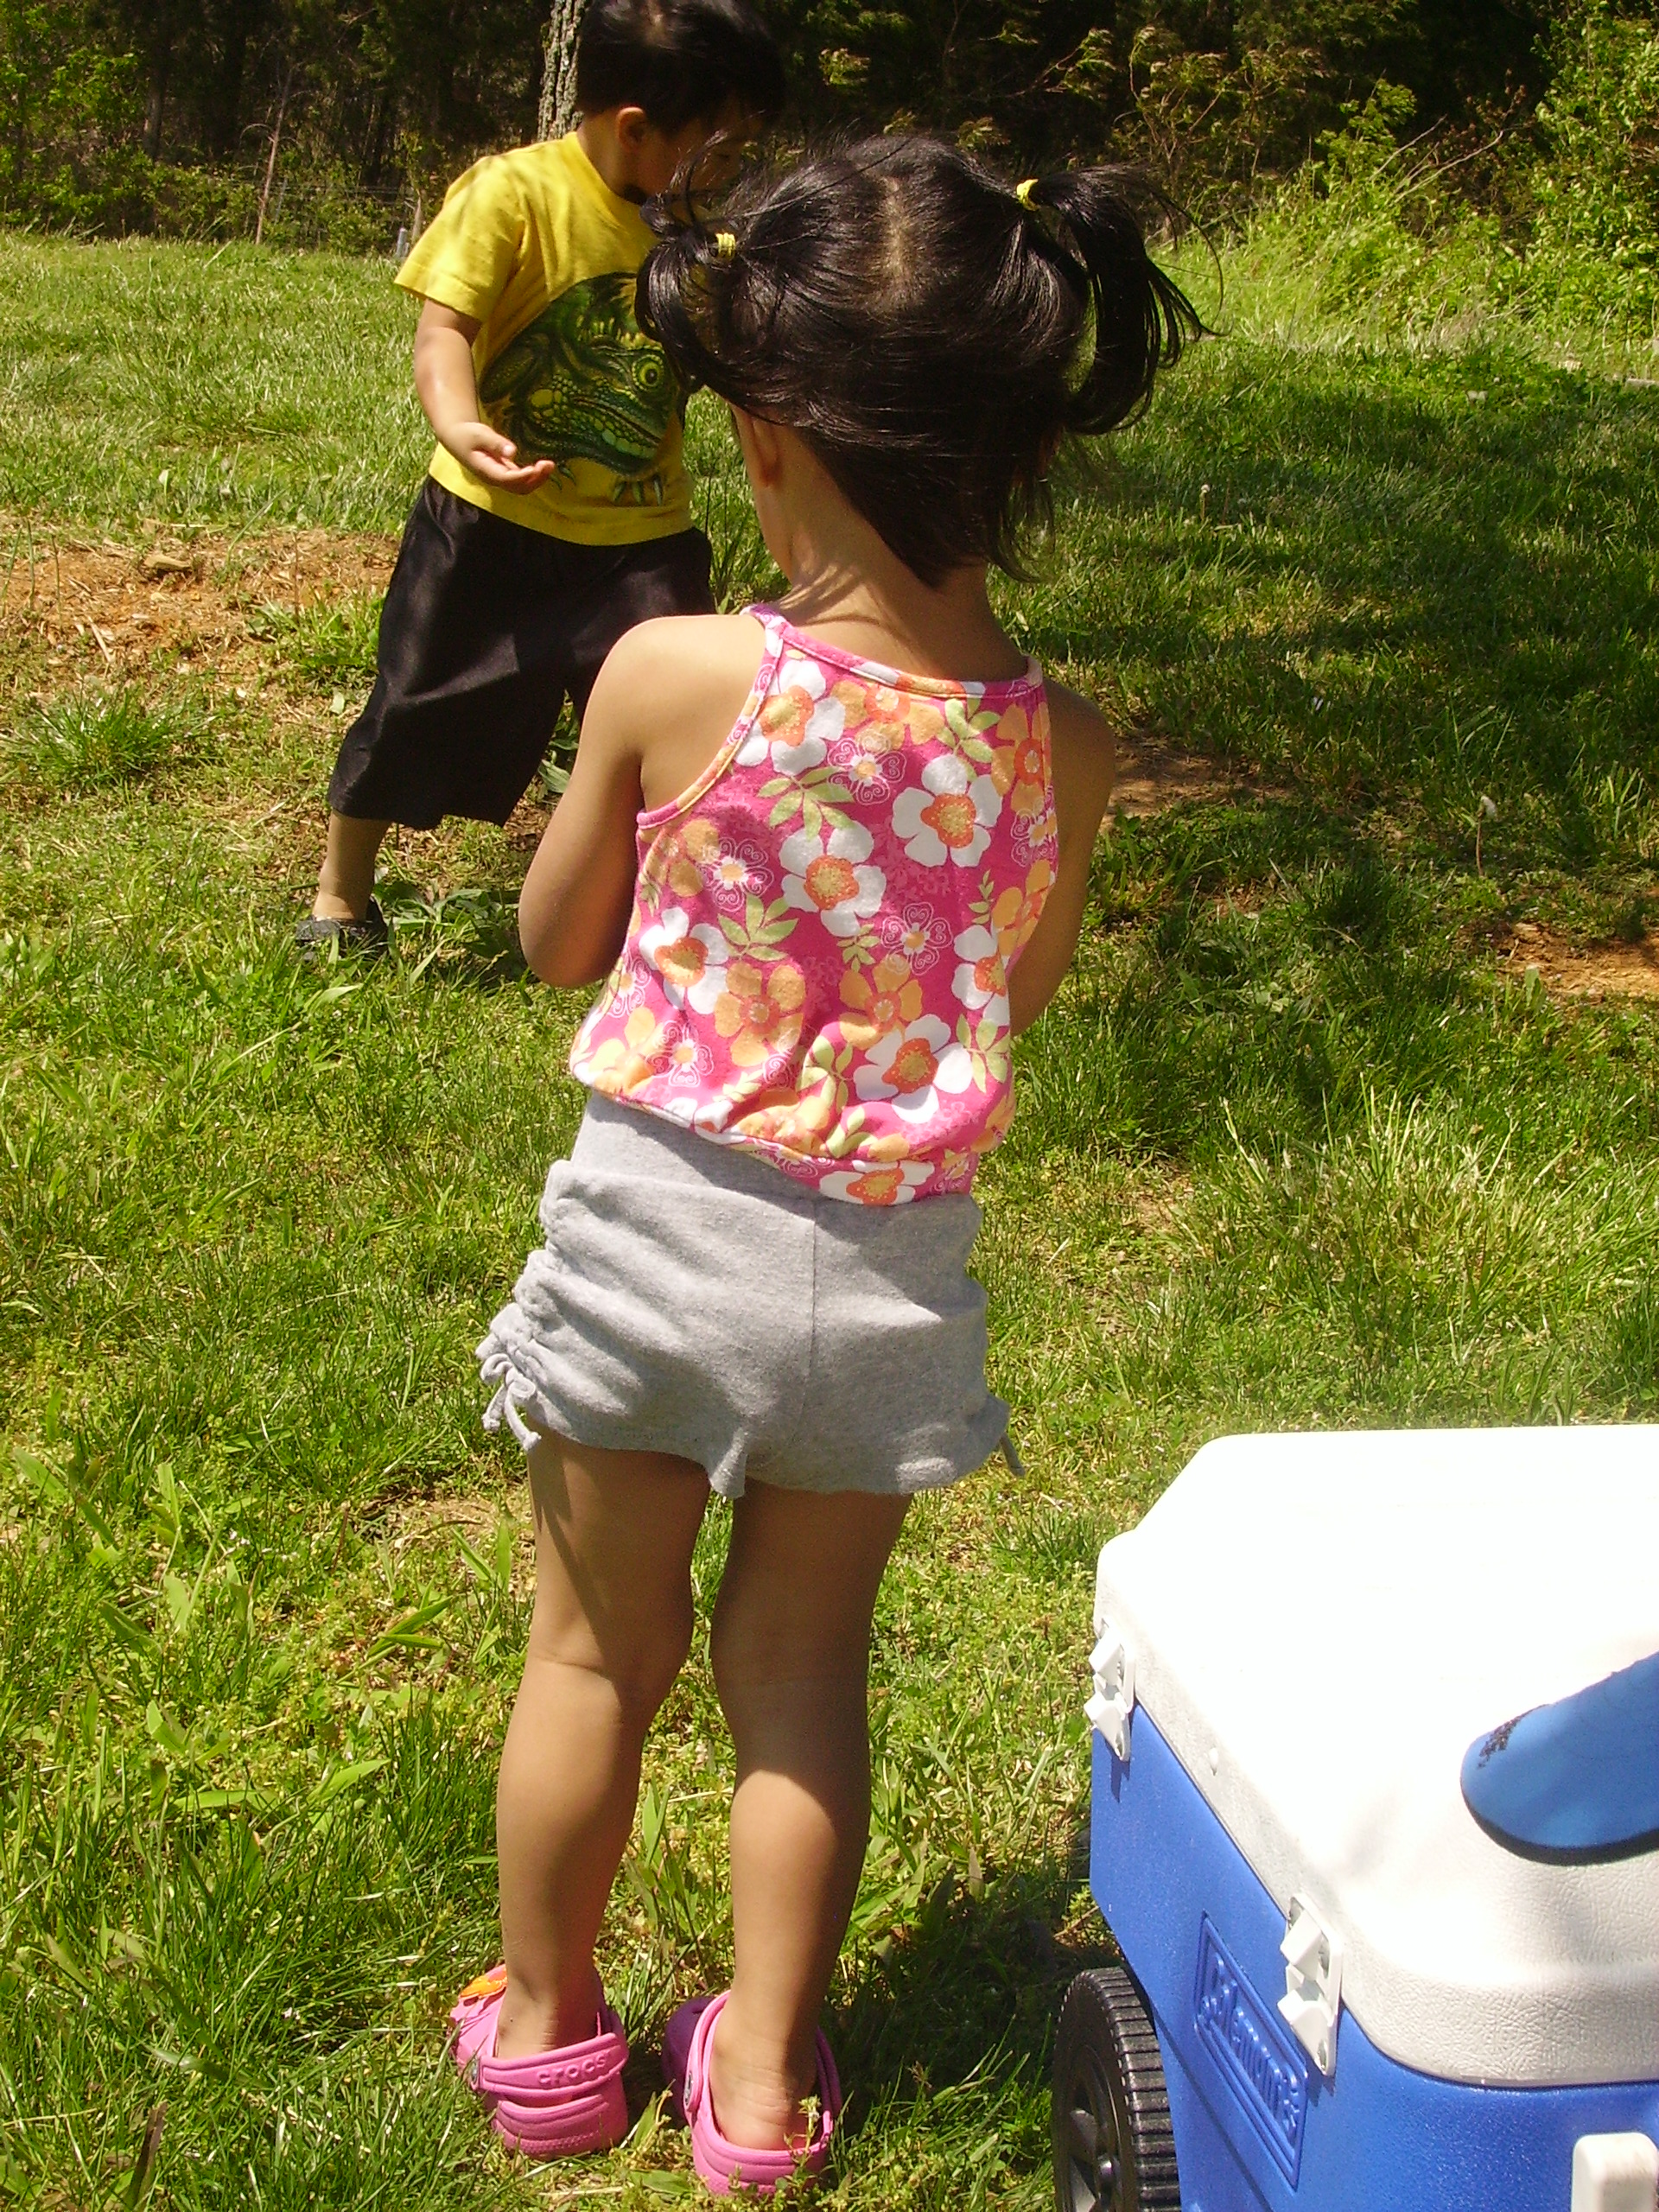 My little niece in her short shorts.